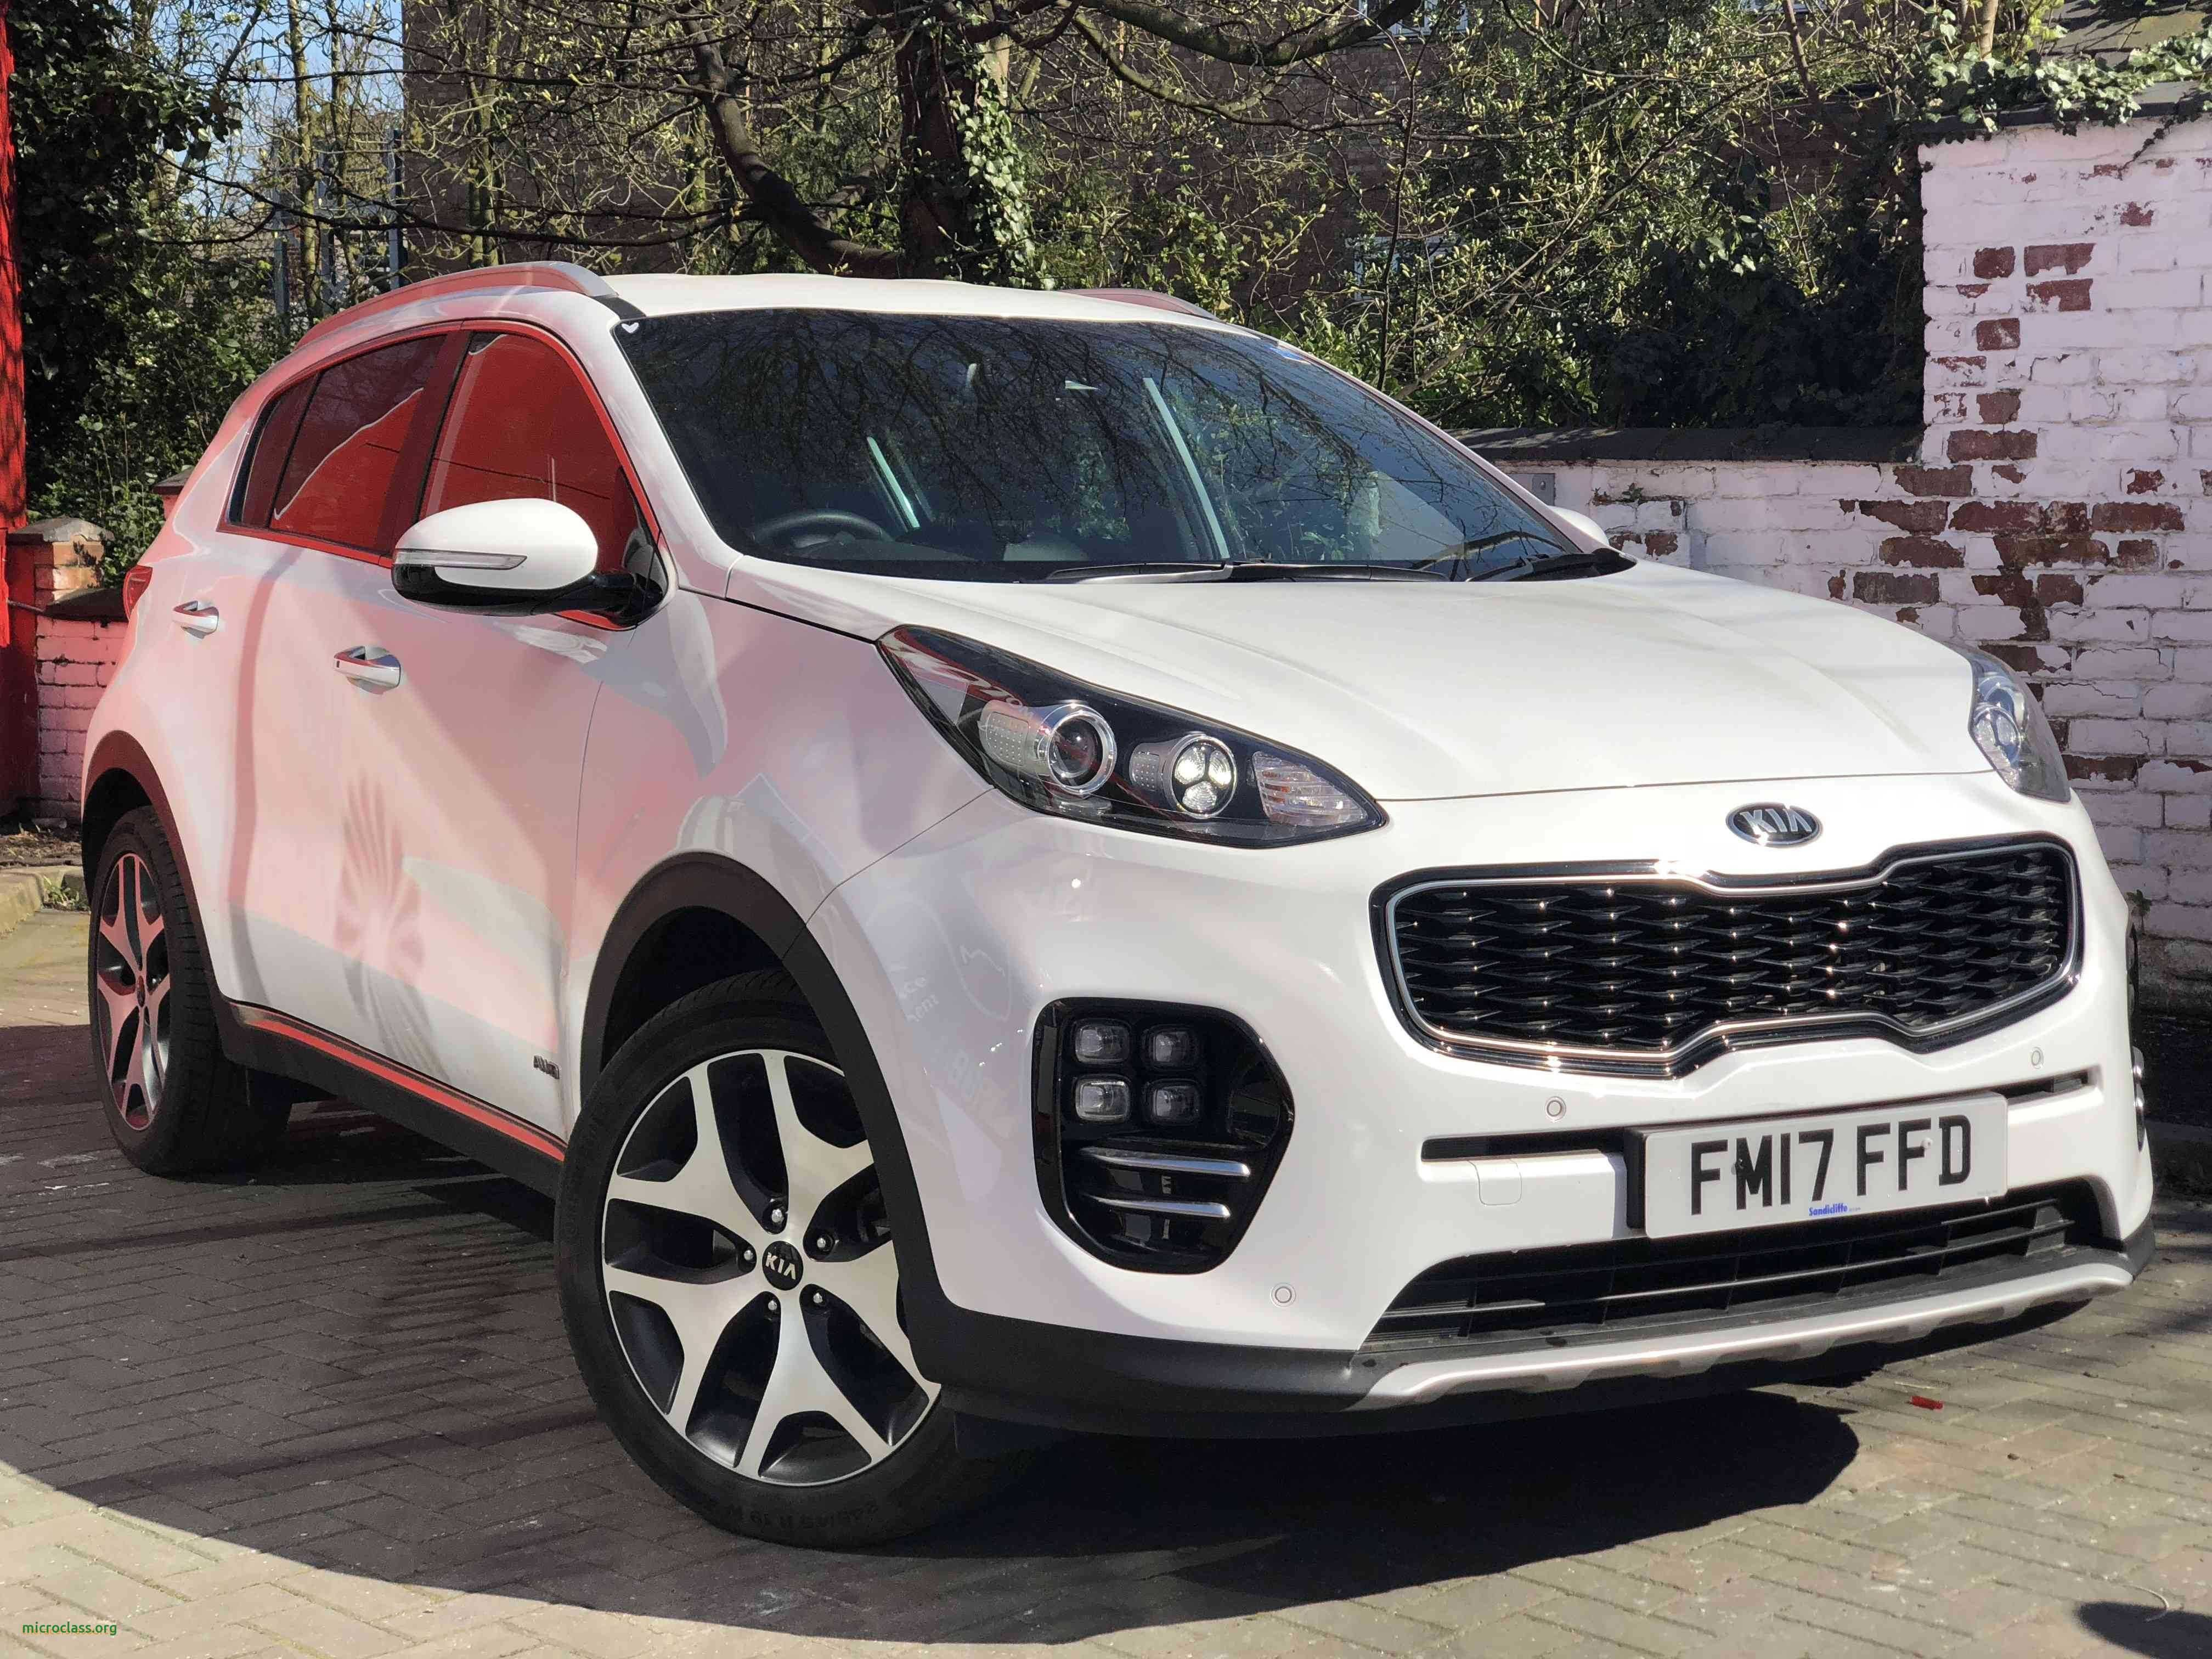 2018 Kia Sportage Specs And Review 2018 2019 Car Release Date Fresh Kia Sportage Kia Sportage